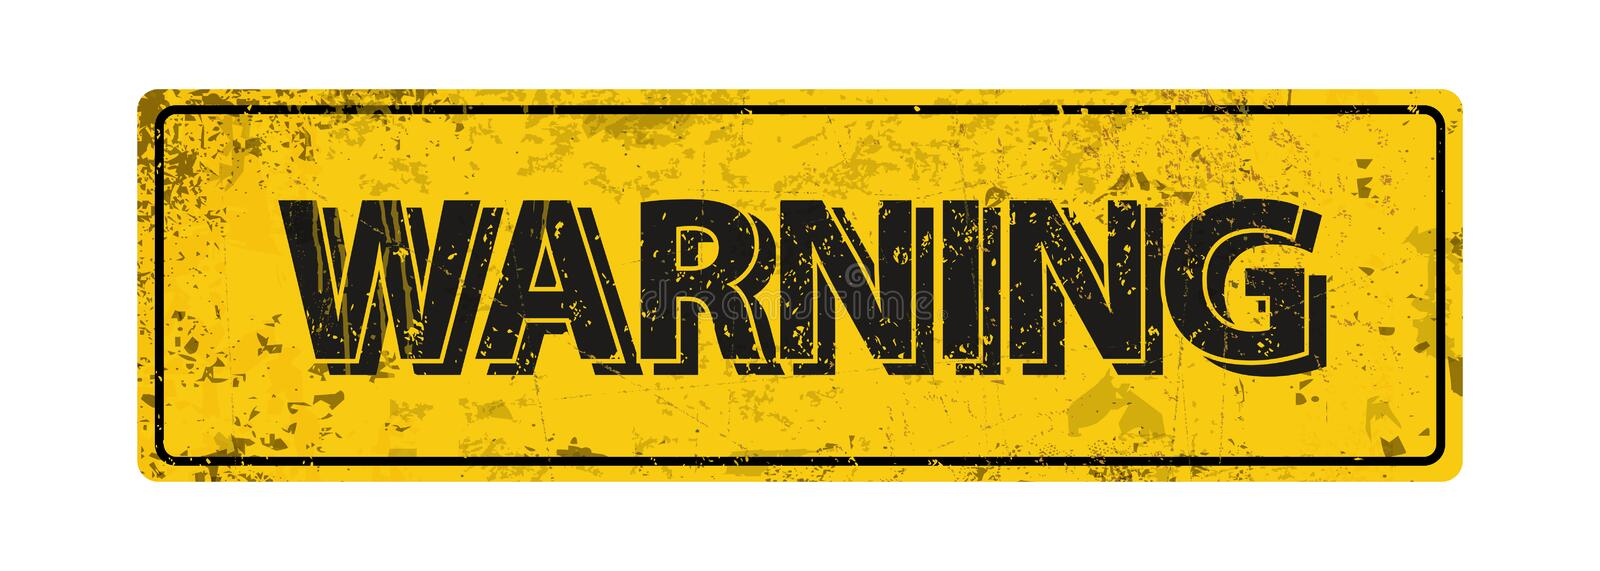 Warning - Vector illustration - vintage rusty metal sign. On white background royalty free illustration